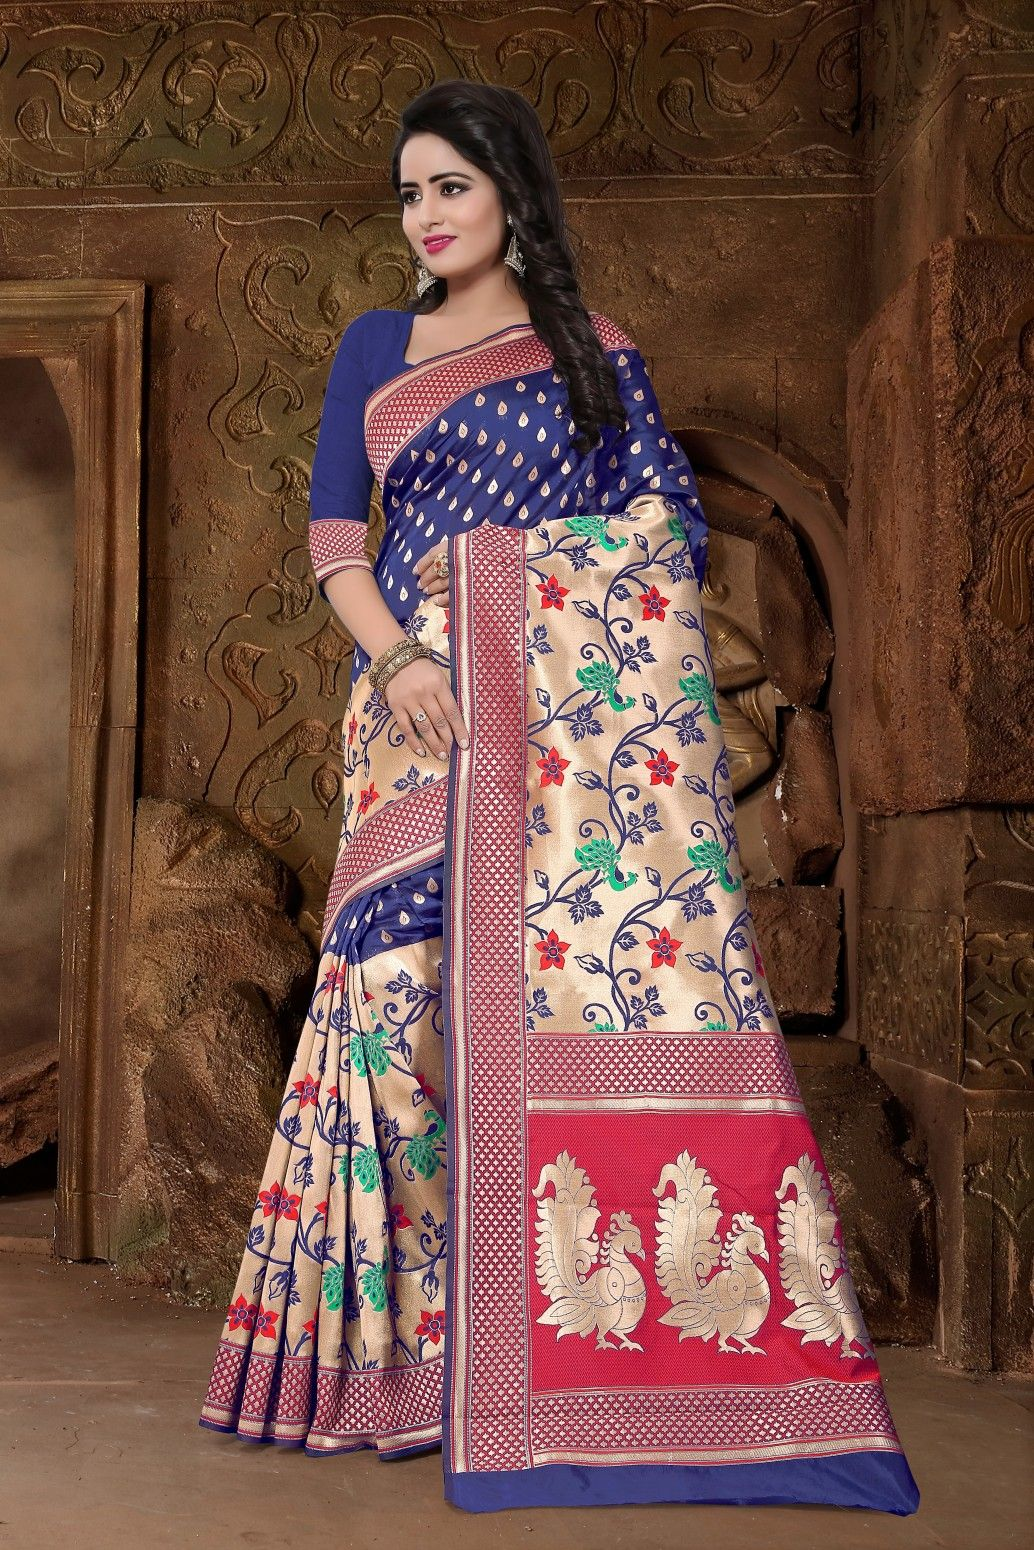 c6d80cc477 Buy Fashion Zonez Women Fancy Saree Online at Low prices in India on  Winsant, India